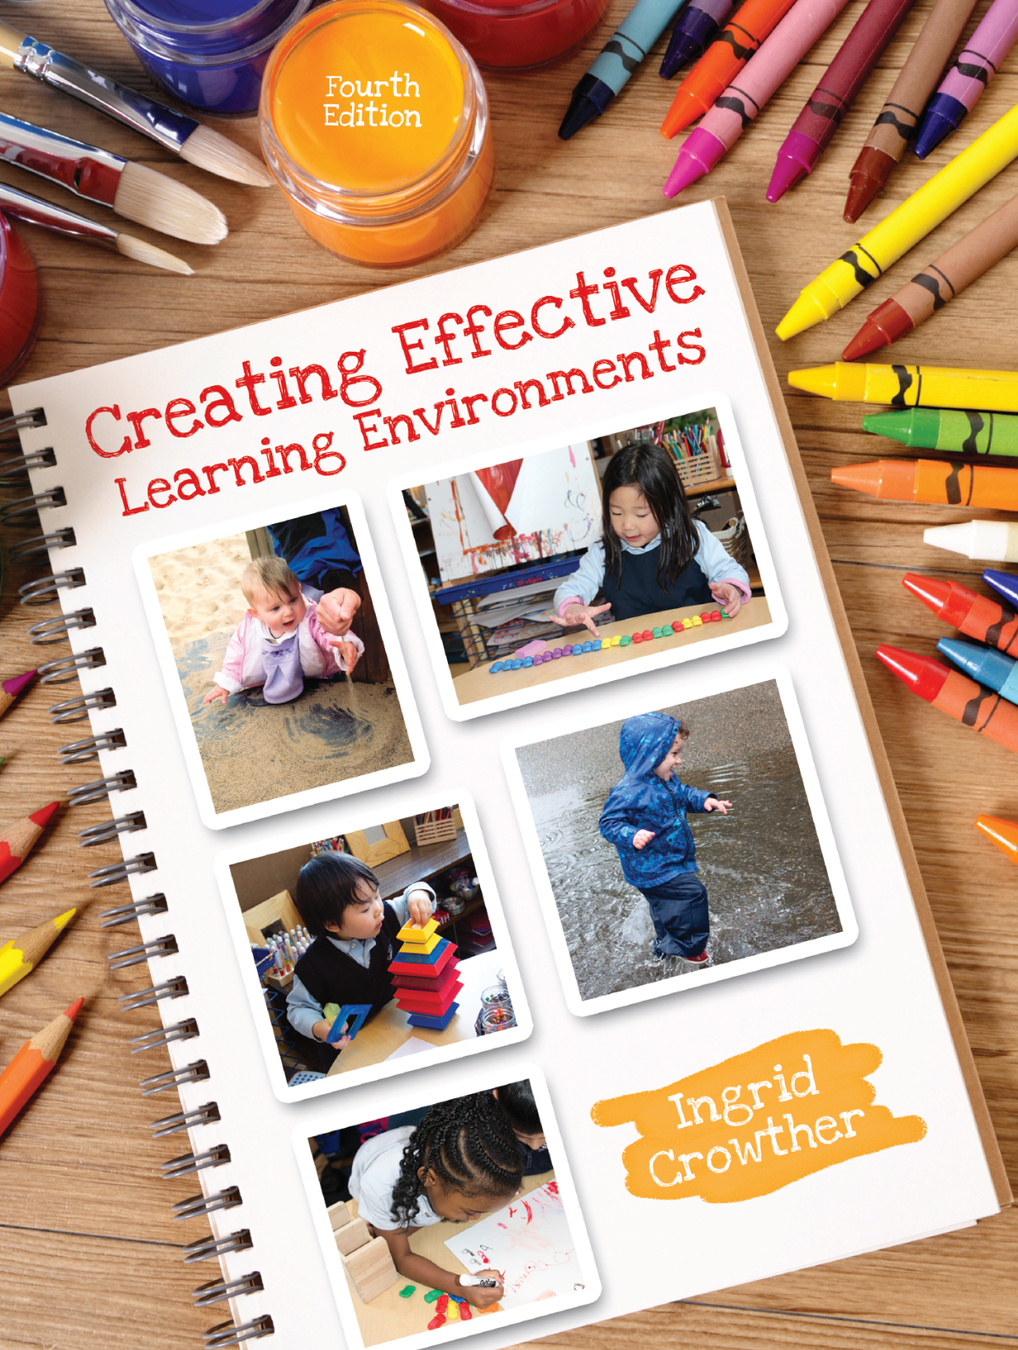 Creating Effective Learning Environments, 4th Edition